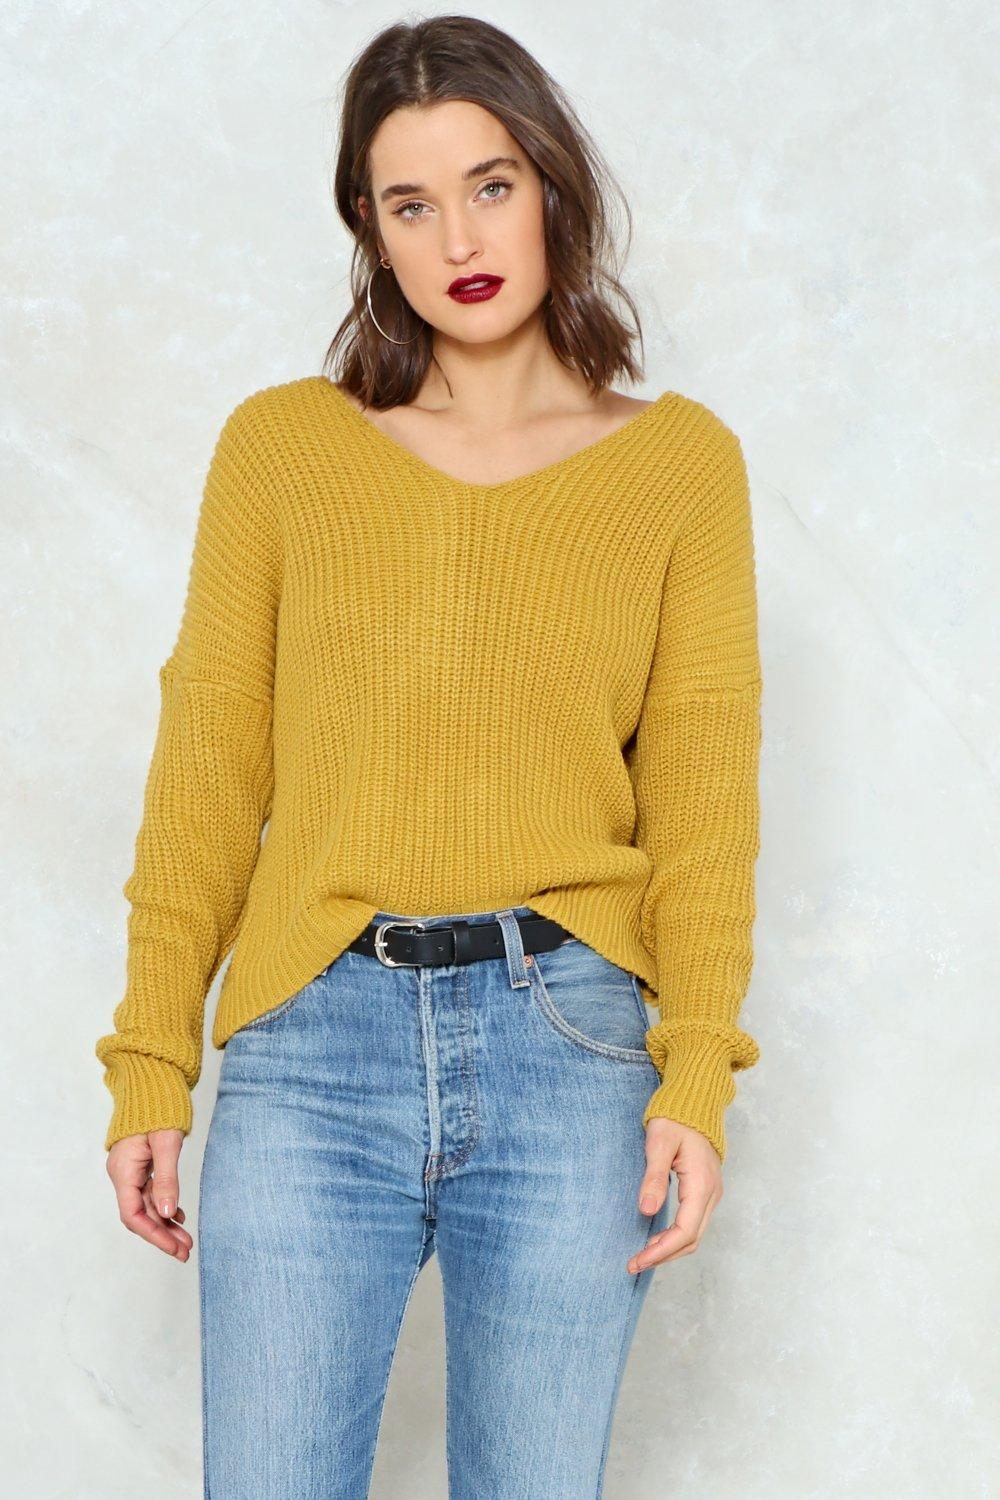 Knot My Fault Oversized Sweater | Shop Clothes at Nasty Gal!